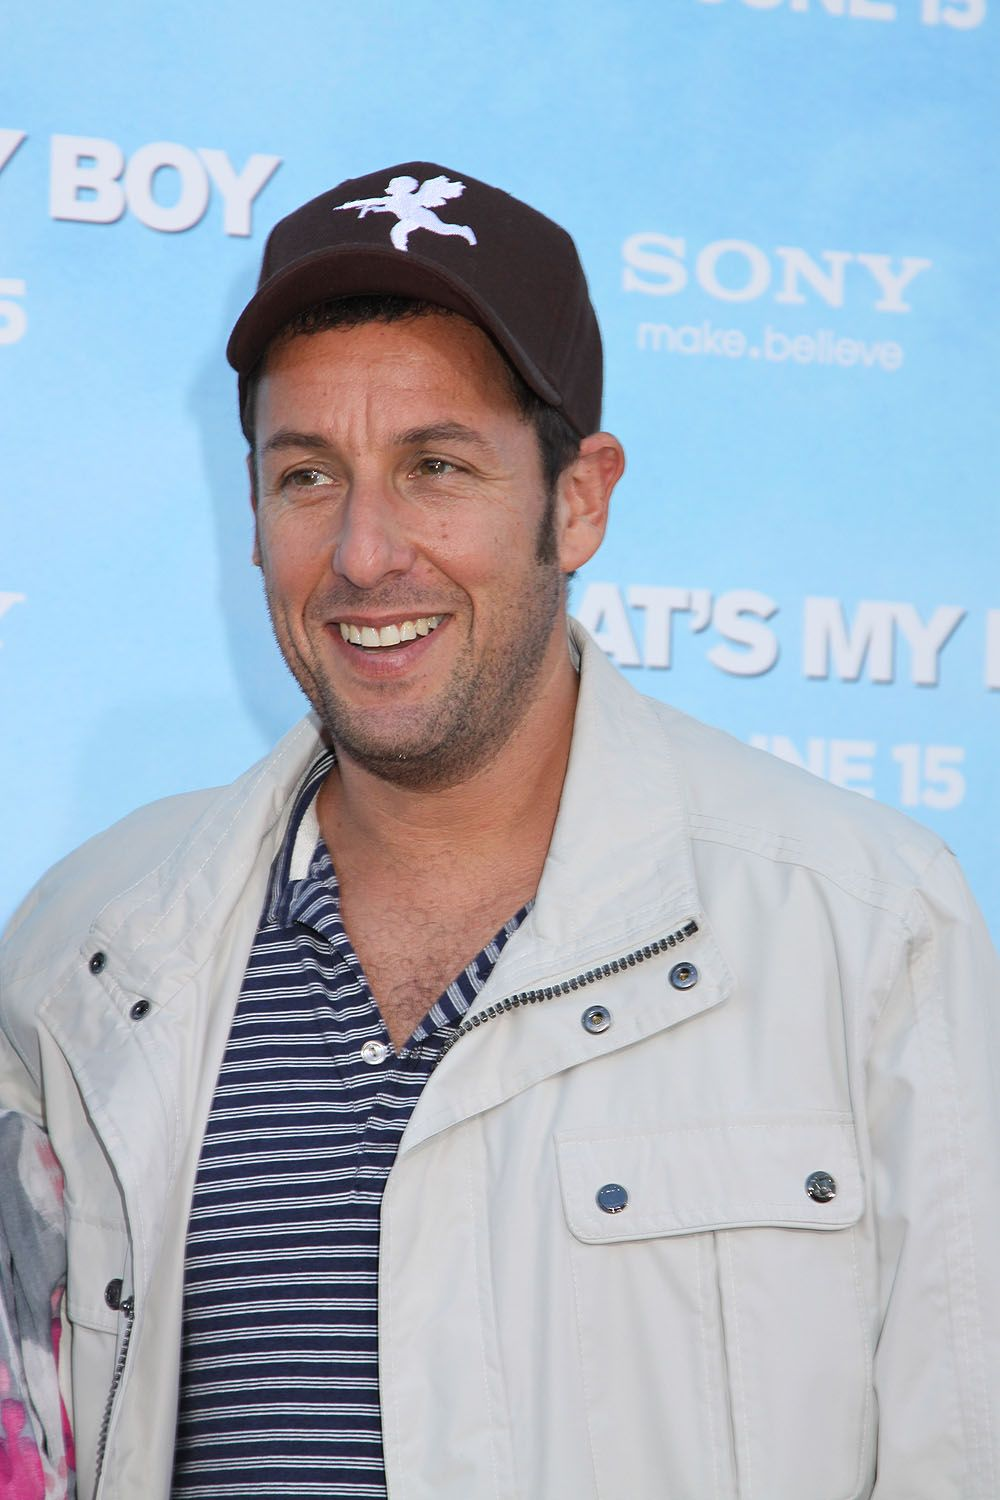 via:www.assignmentx.com 9 Actors Who Get Paid Millions To Play Themselves In Movies 9 Actors Who Get Paid Millions To Play Themselves In Movies 14 AdamSandler SS MG 9058